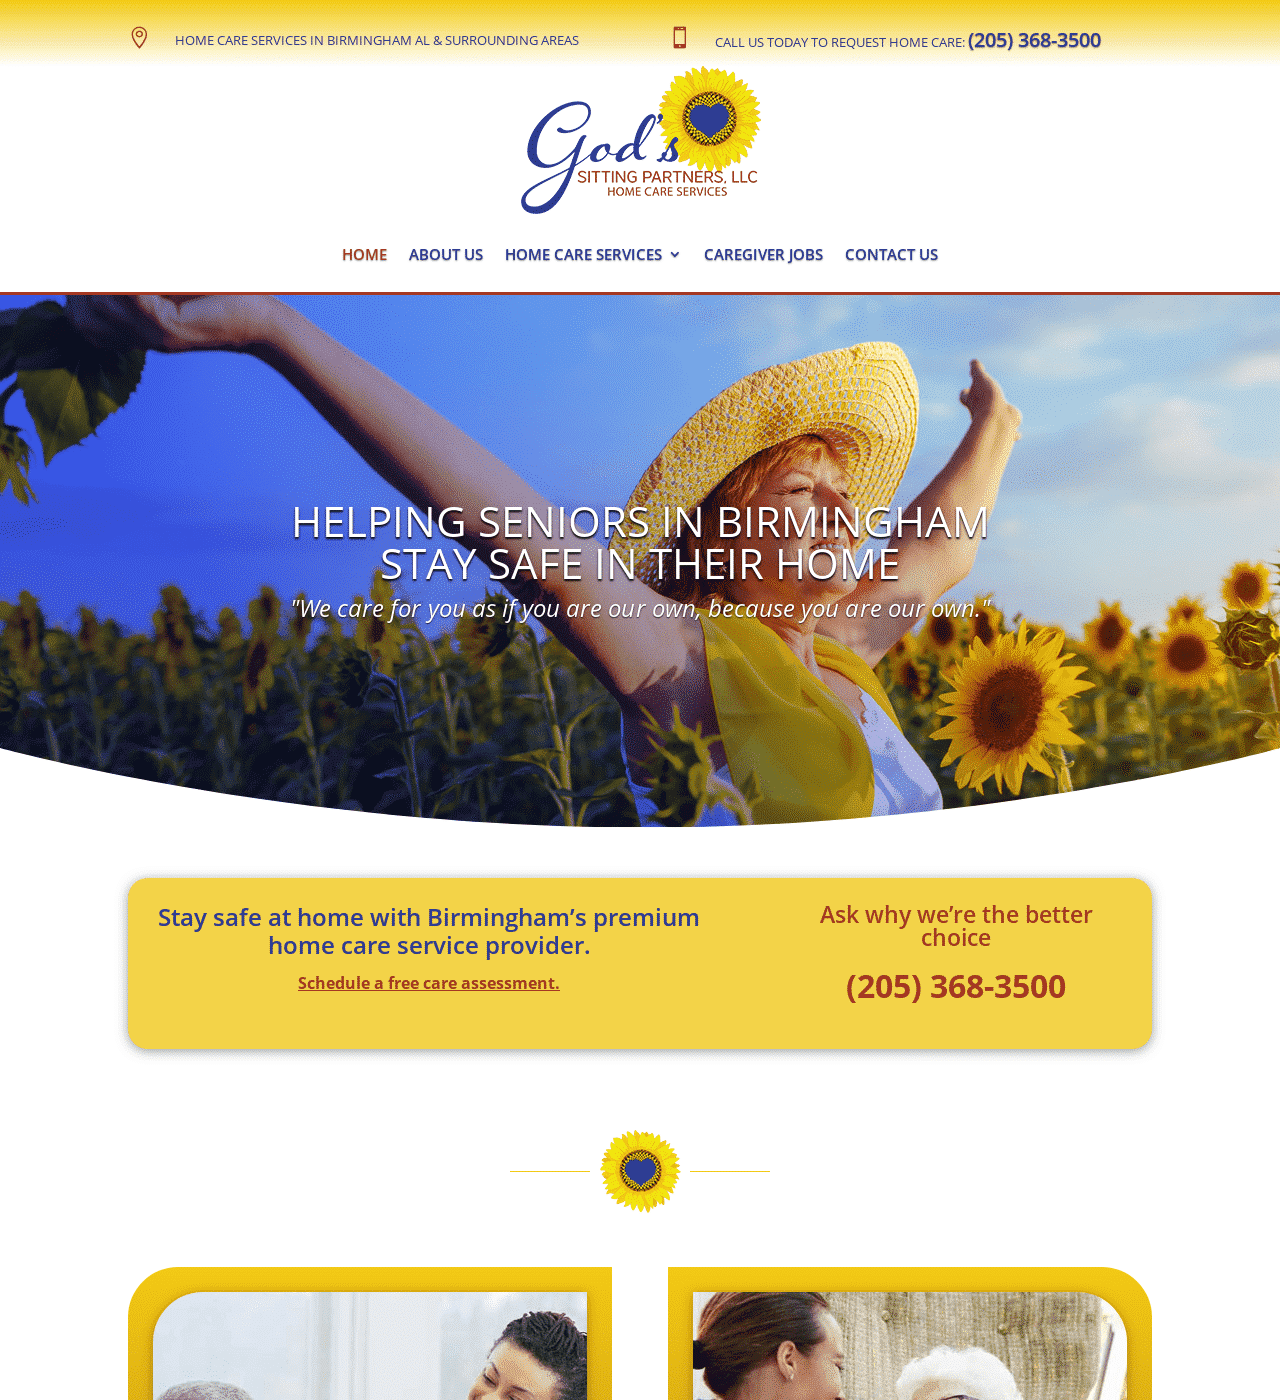 Birmingham-Web-Design-Agency-C-Kinion-Design - God's Sitting Partners - half page